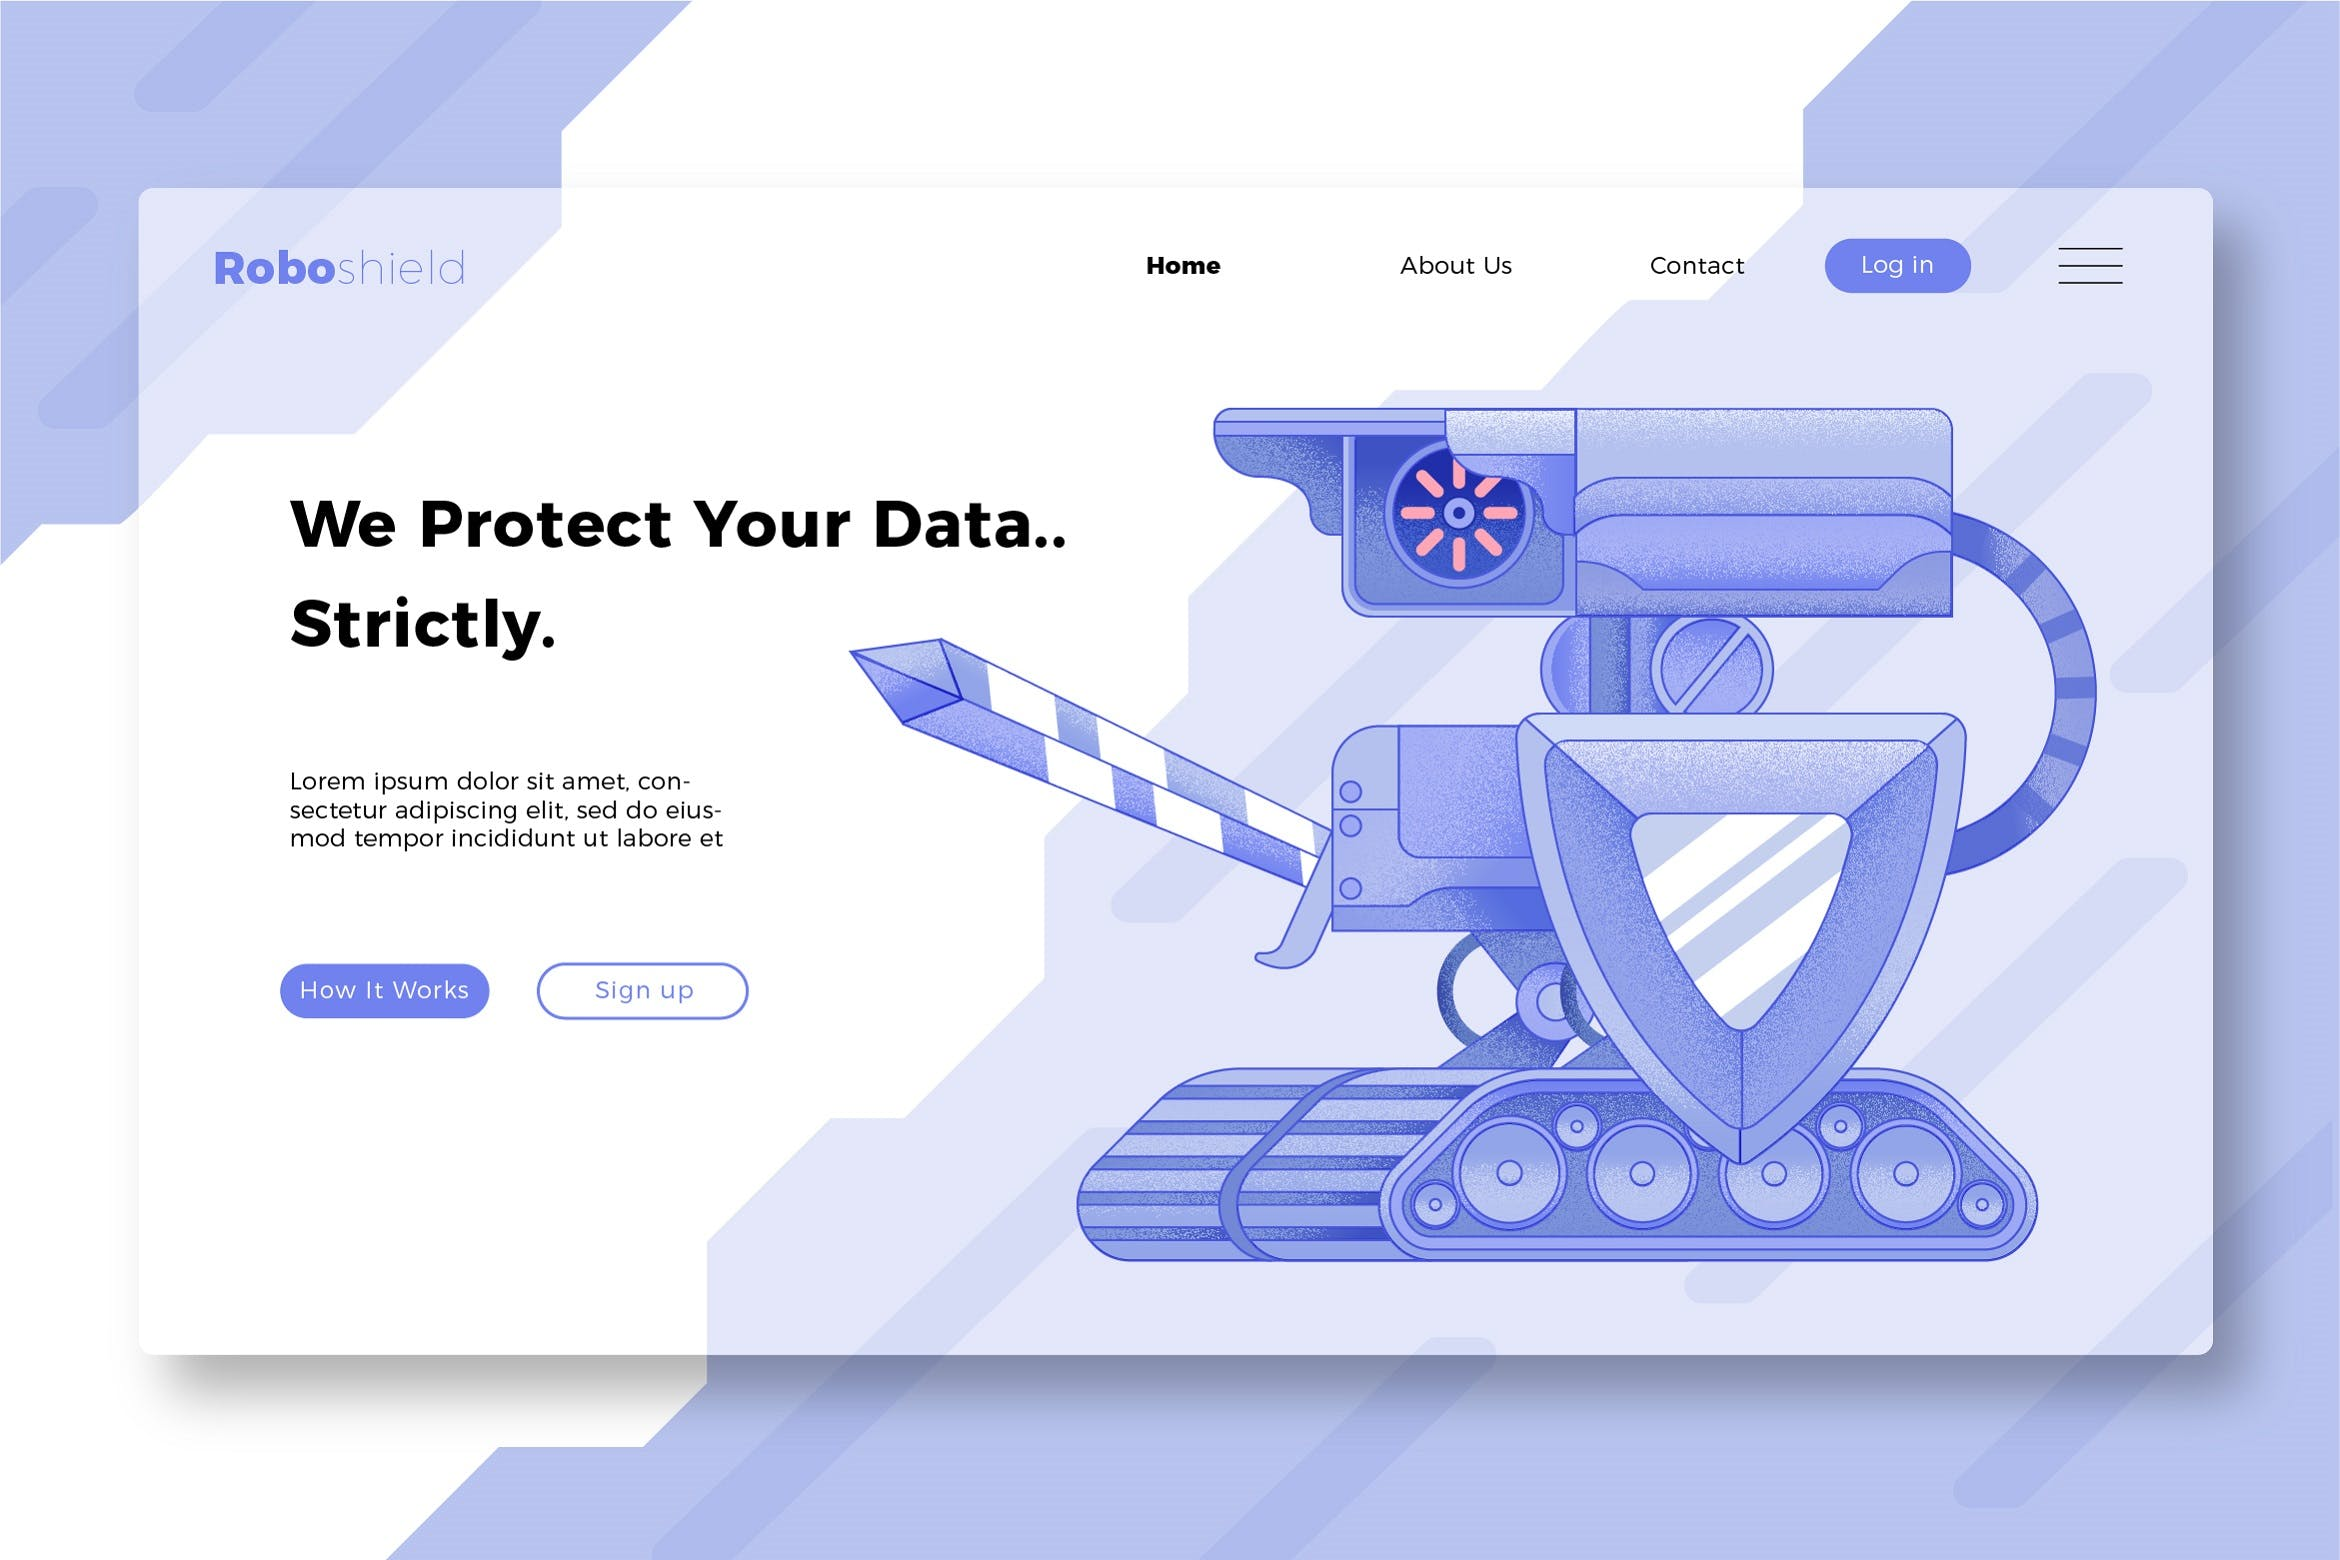 WEB端插画风格登录页 Security - Banner & Landing Page